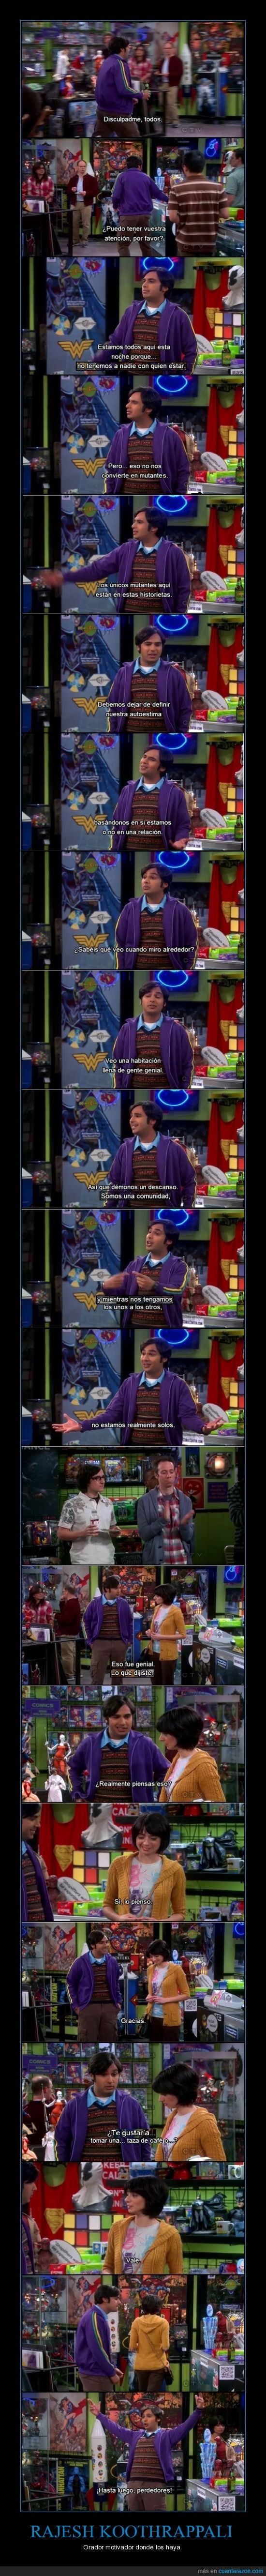 capitulo 16,cita,comics,cooper,Koothrappali,nerds,raj,rajesh,sheldon,stuart,TBBT,temporada 6,The big bang theory